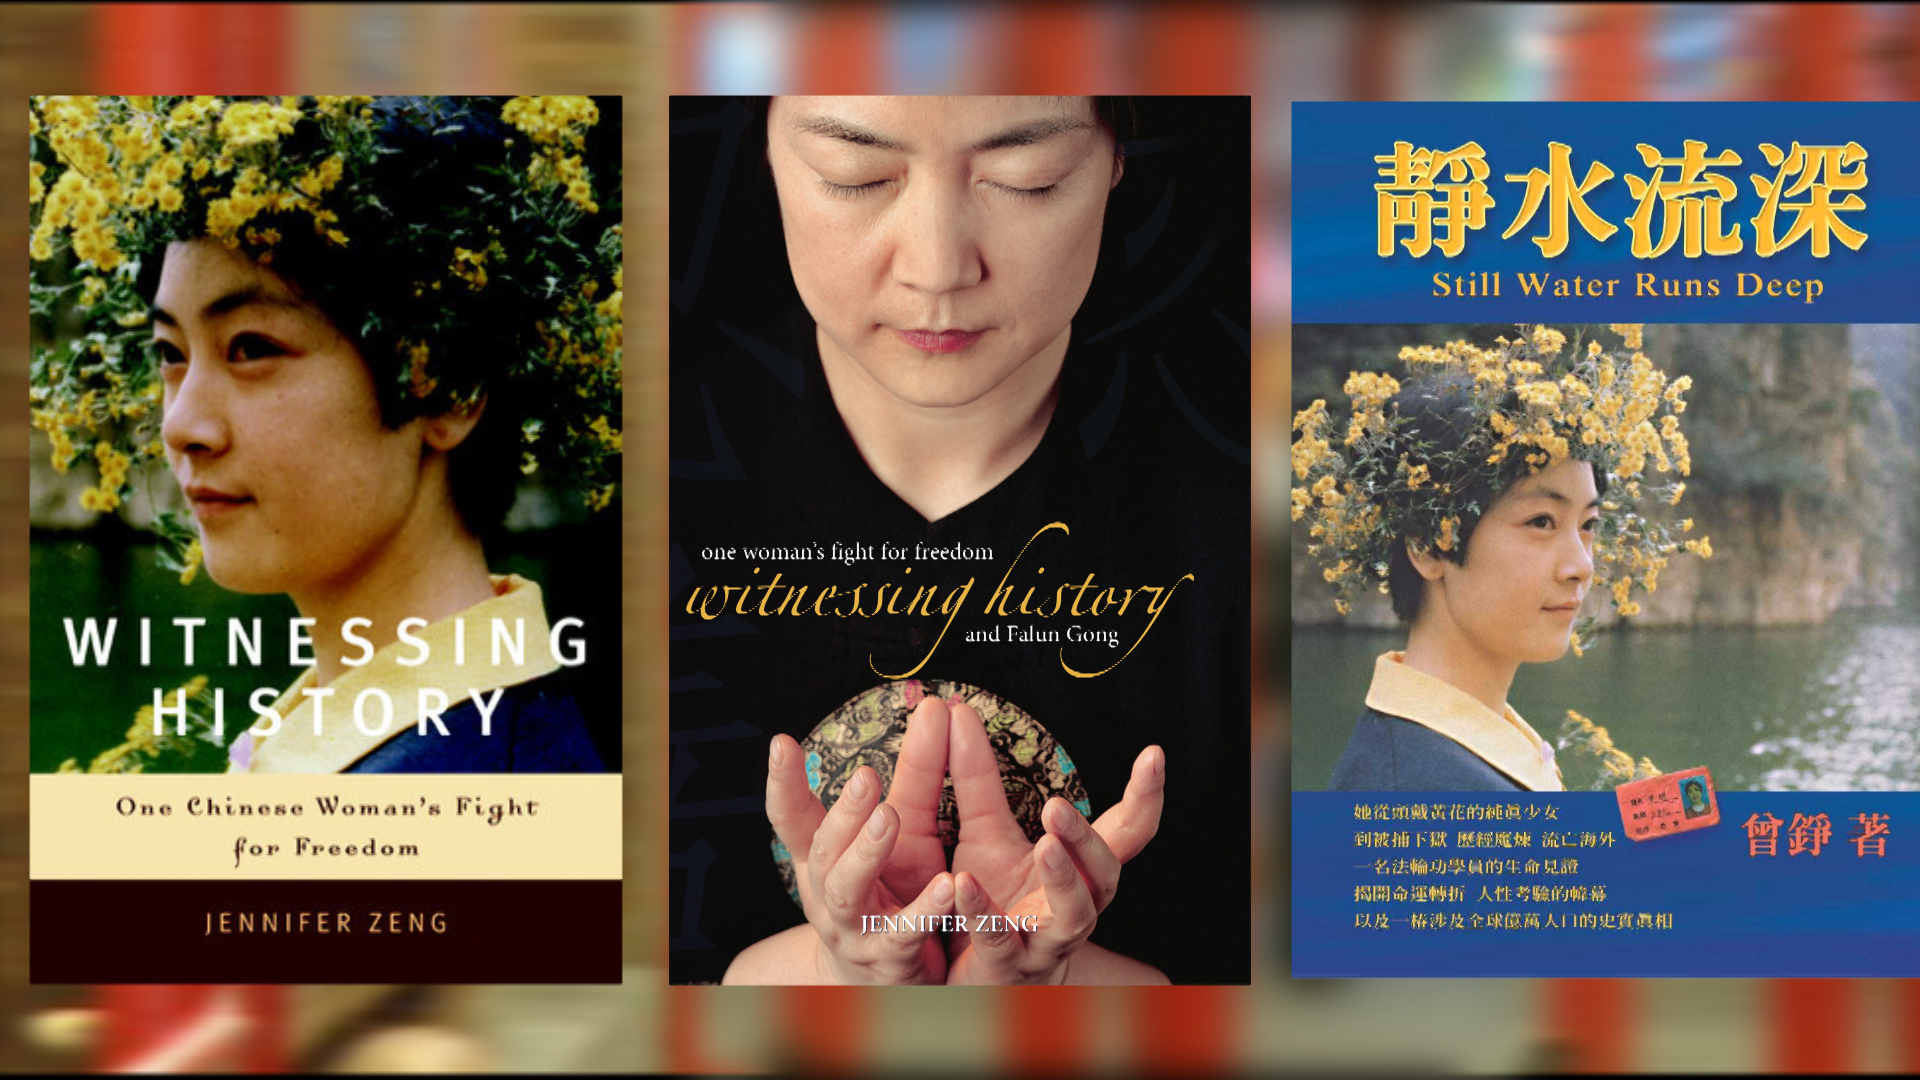 covers of Jennifer's book in English and Chinese.